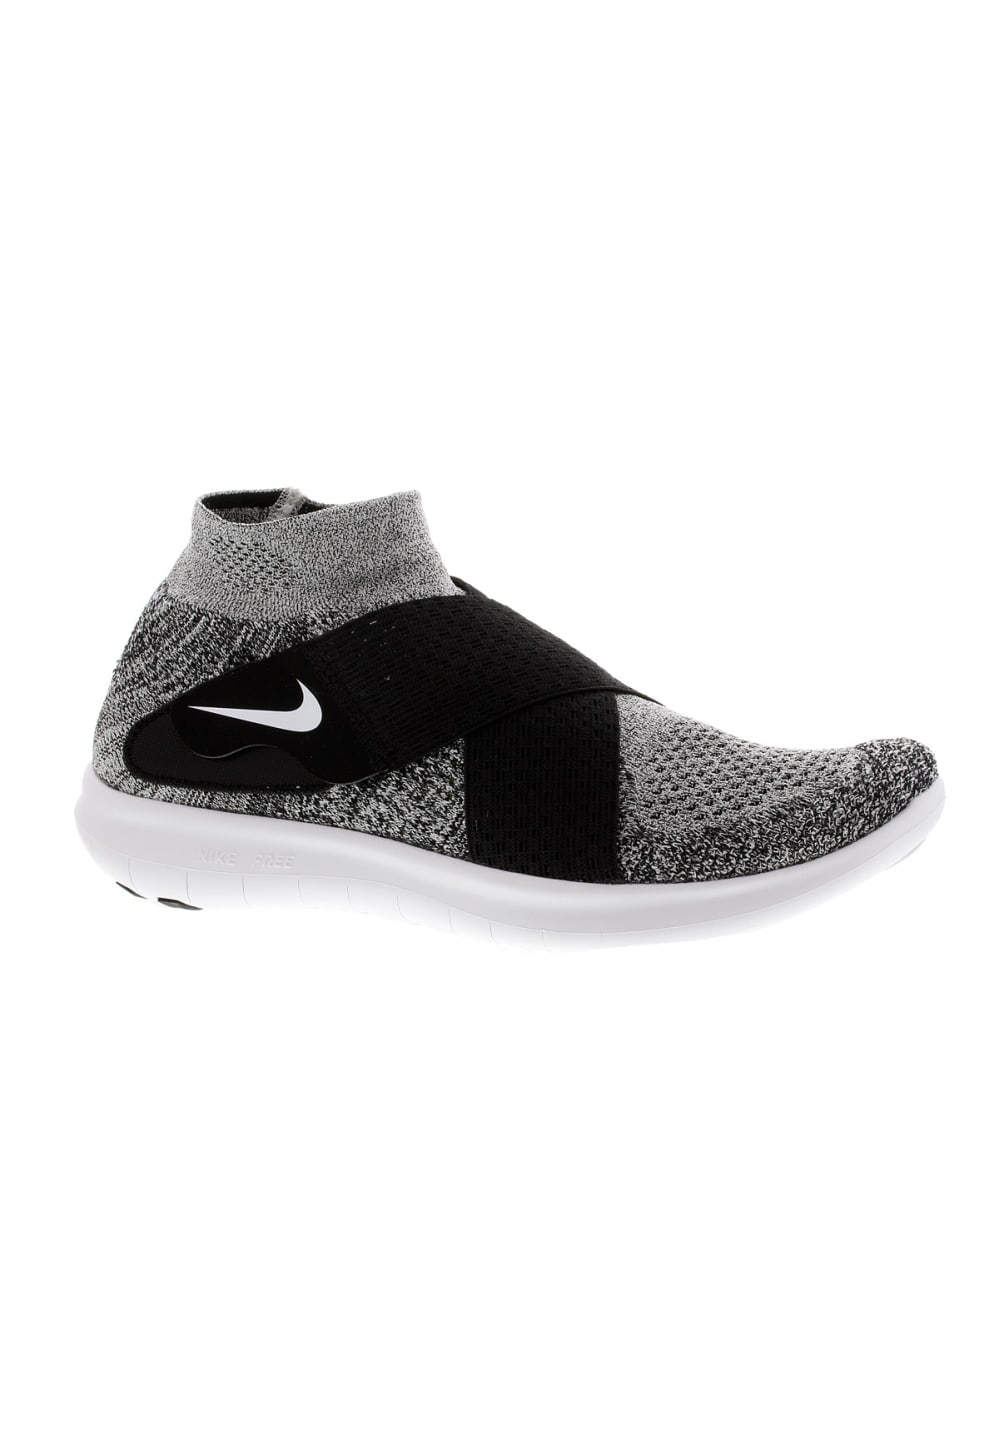 new product 7c158 3fcff Next. Nike. Free RN Motion Flyknit ...